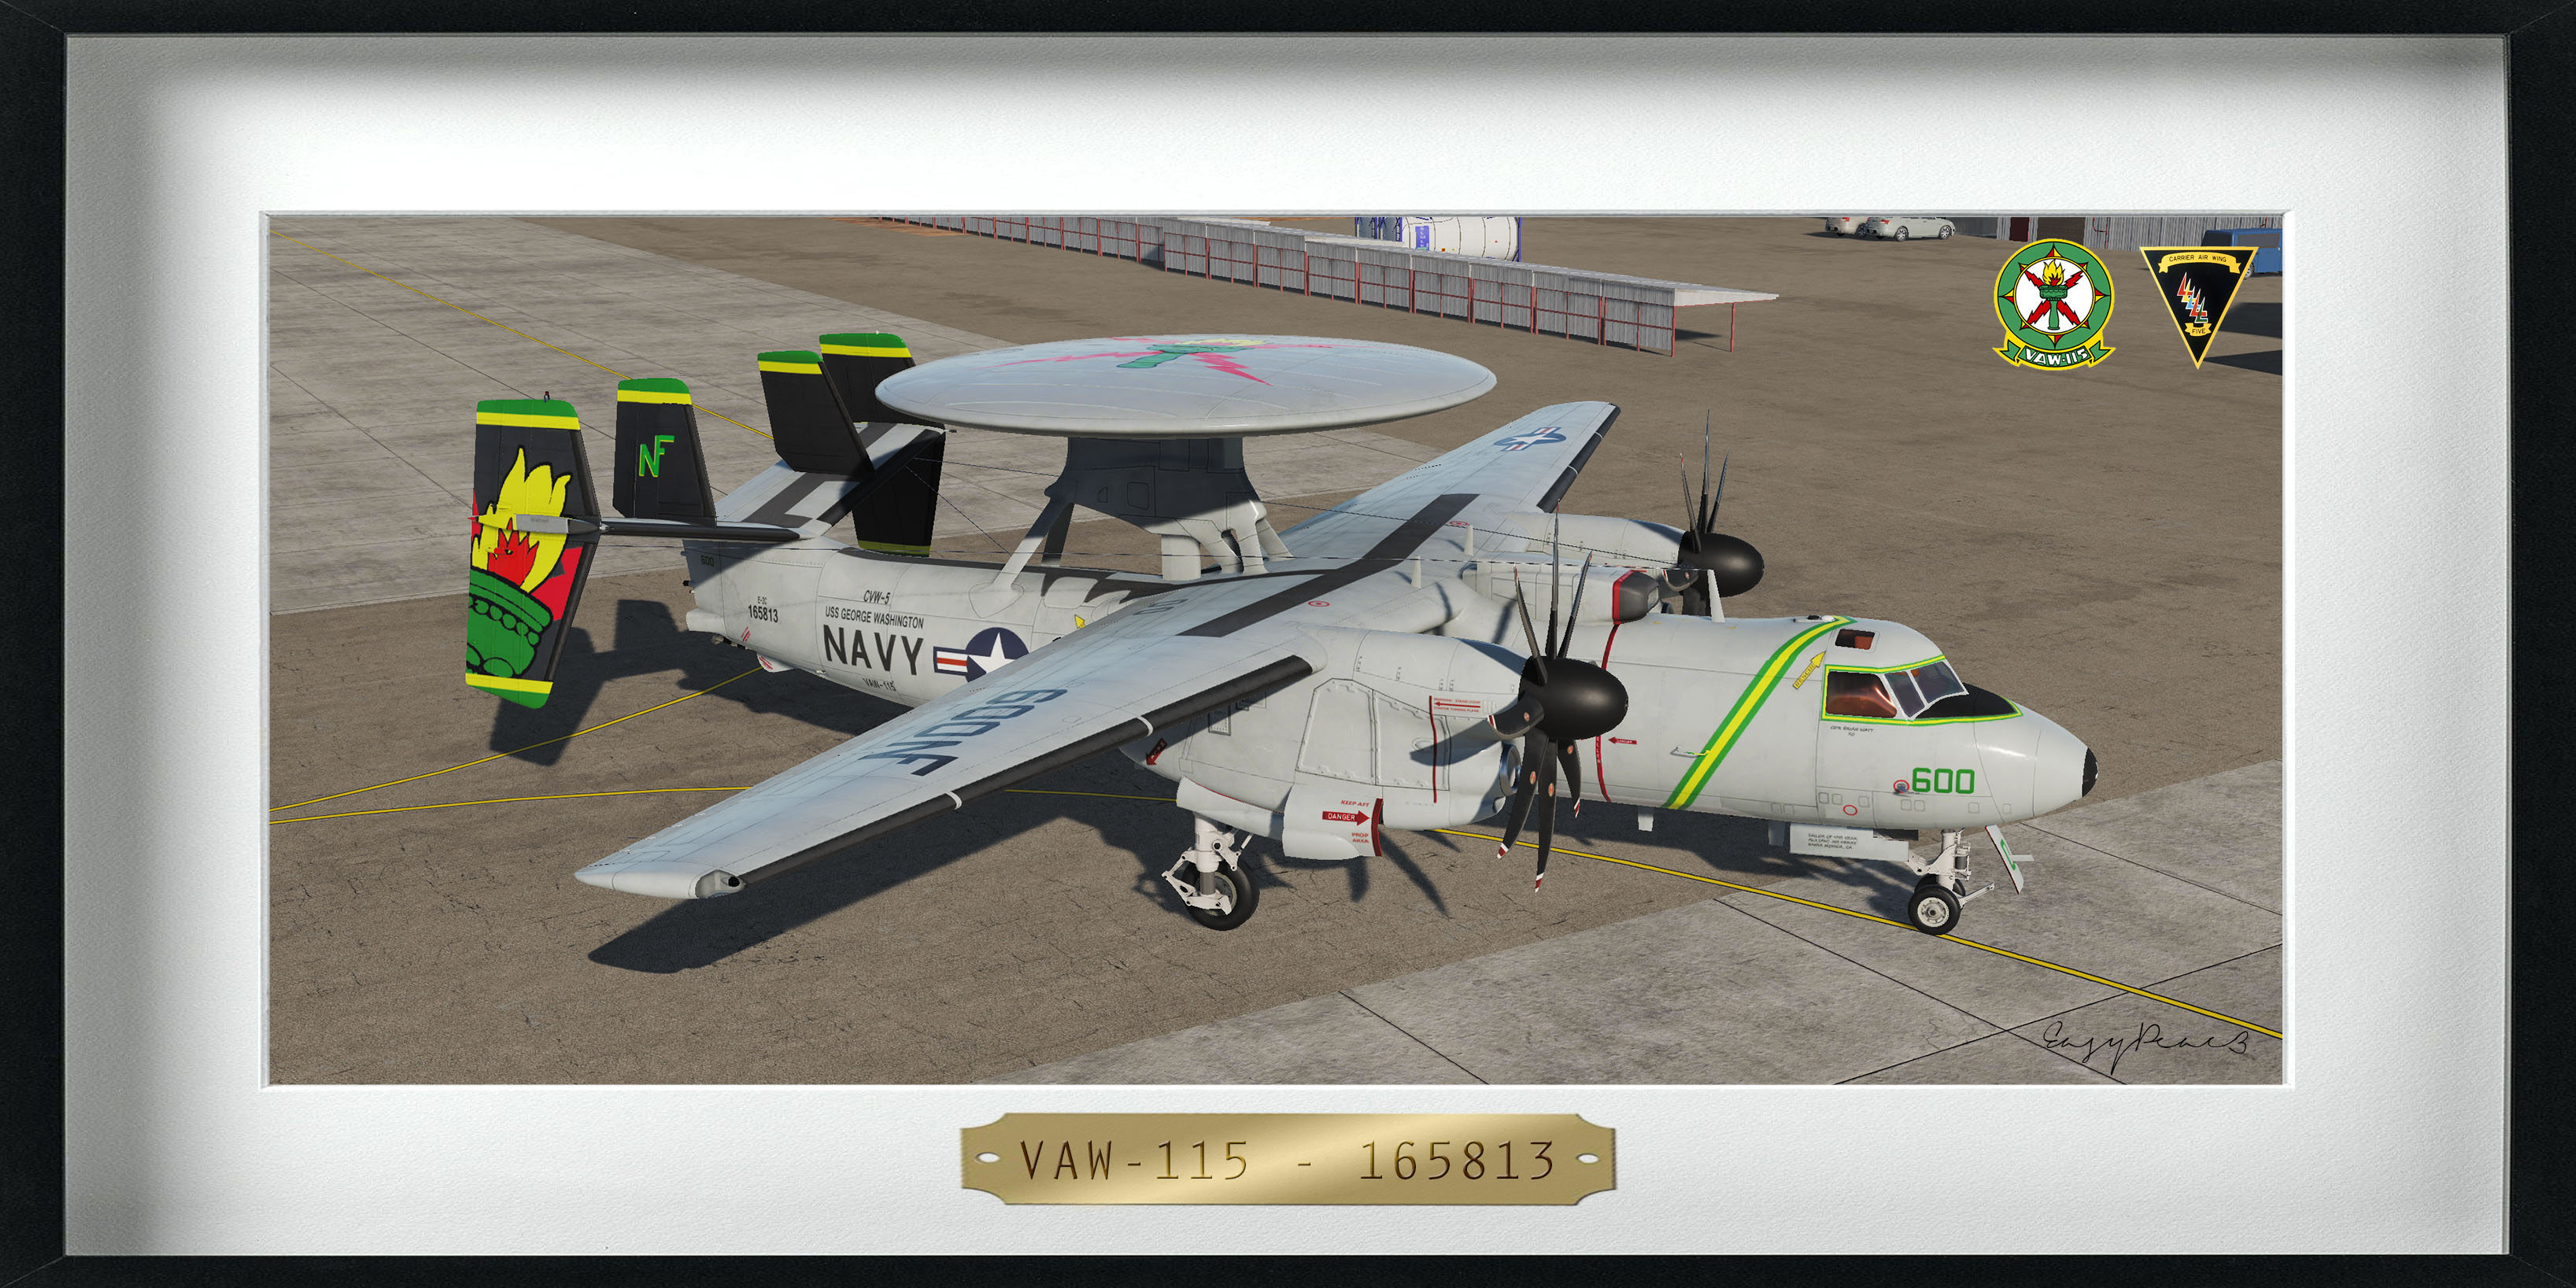 "VAW-115 - ""Liberty Bells"" - 165813 (4K)"